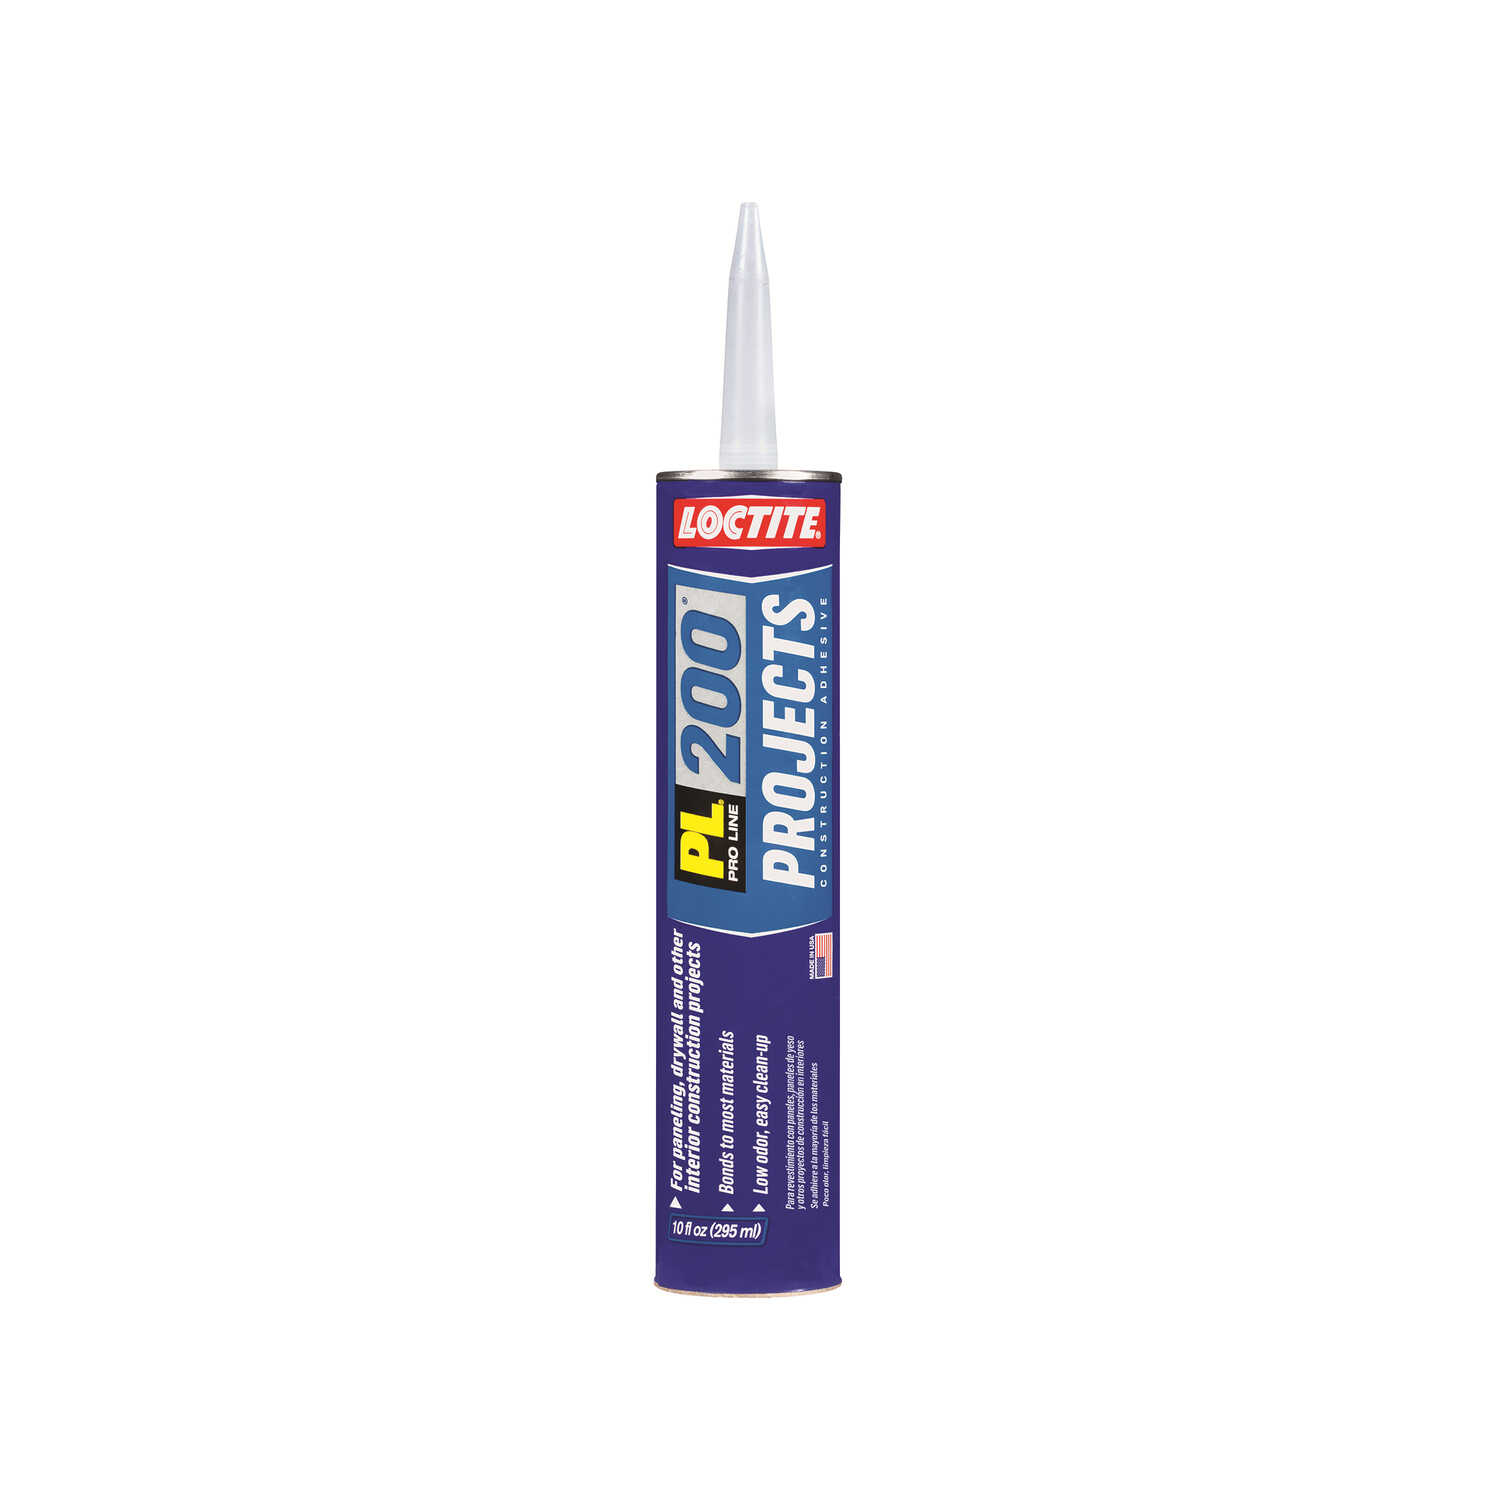 Loctite  PL 200 Projects  Synthetic Elastomeric Polymer  Construction Adhesive  10 oz.